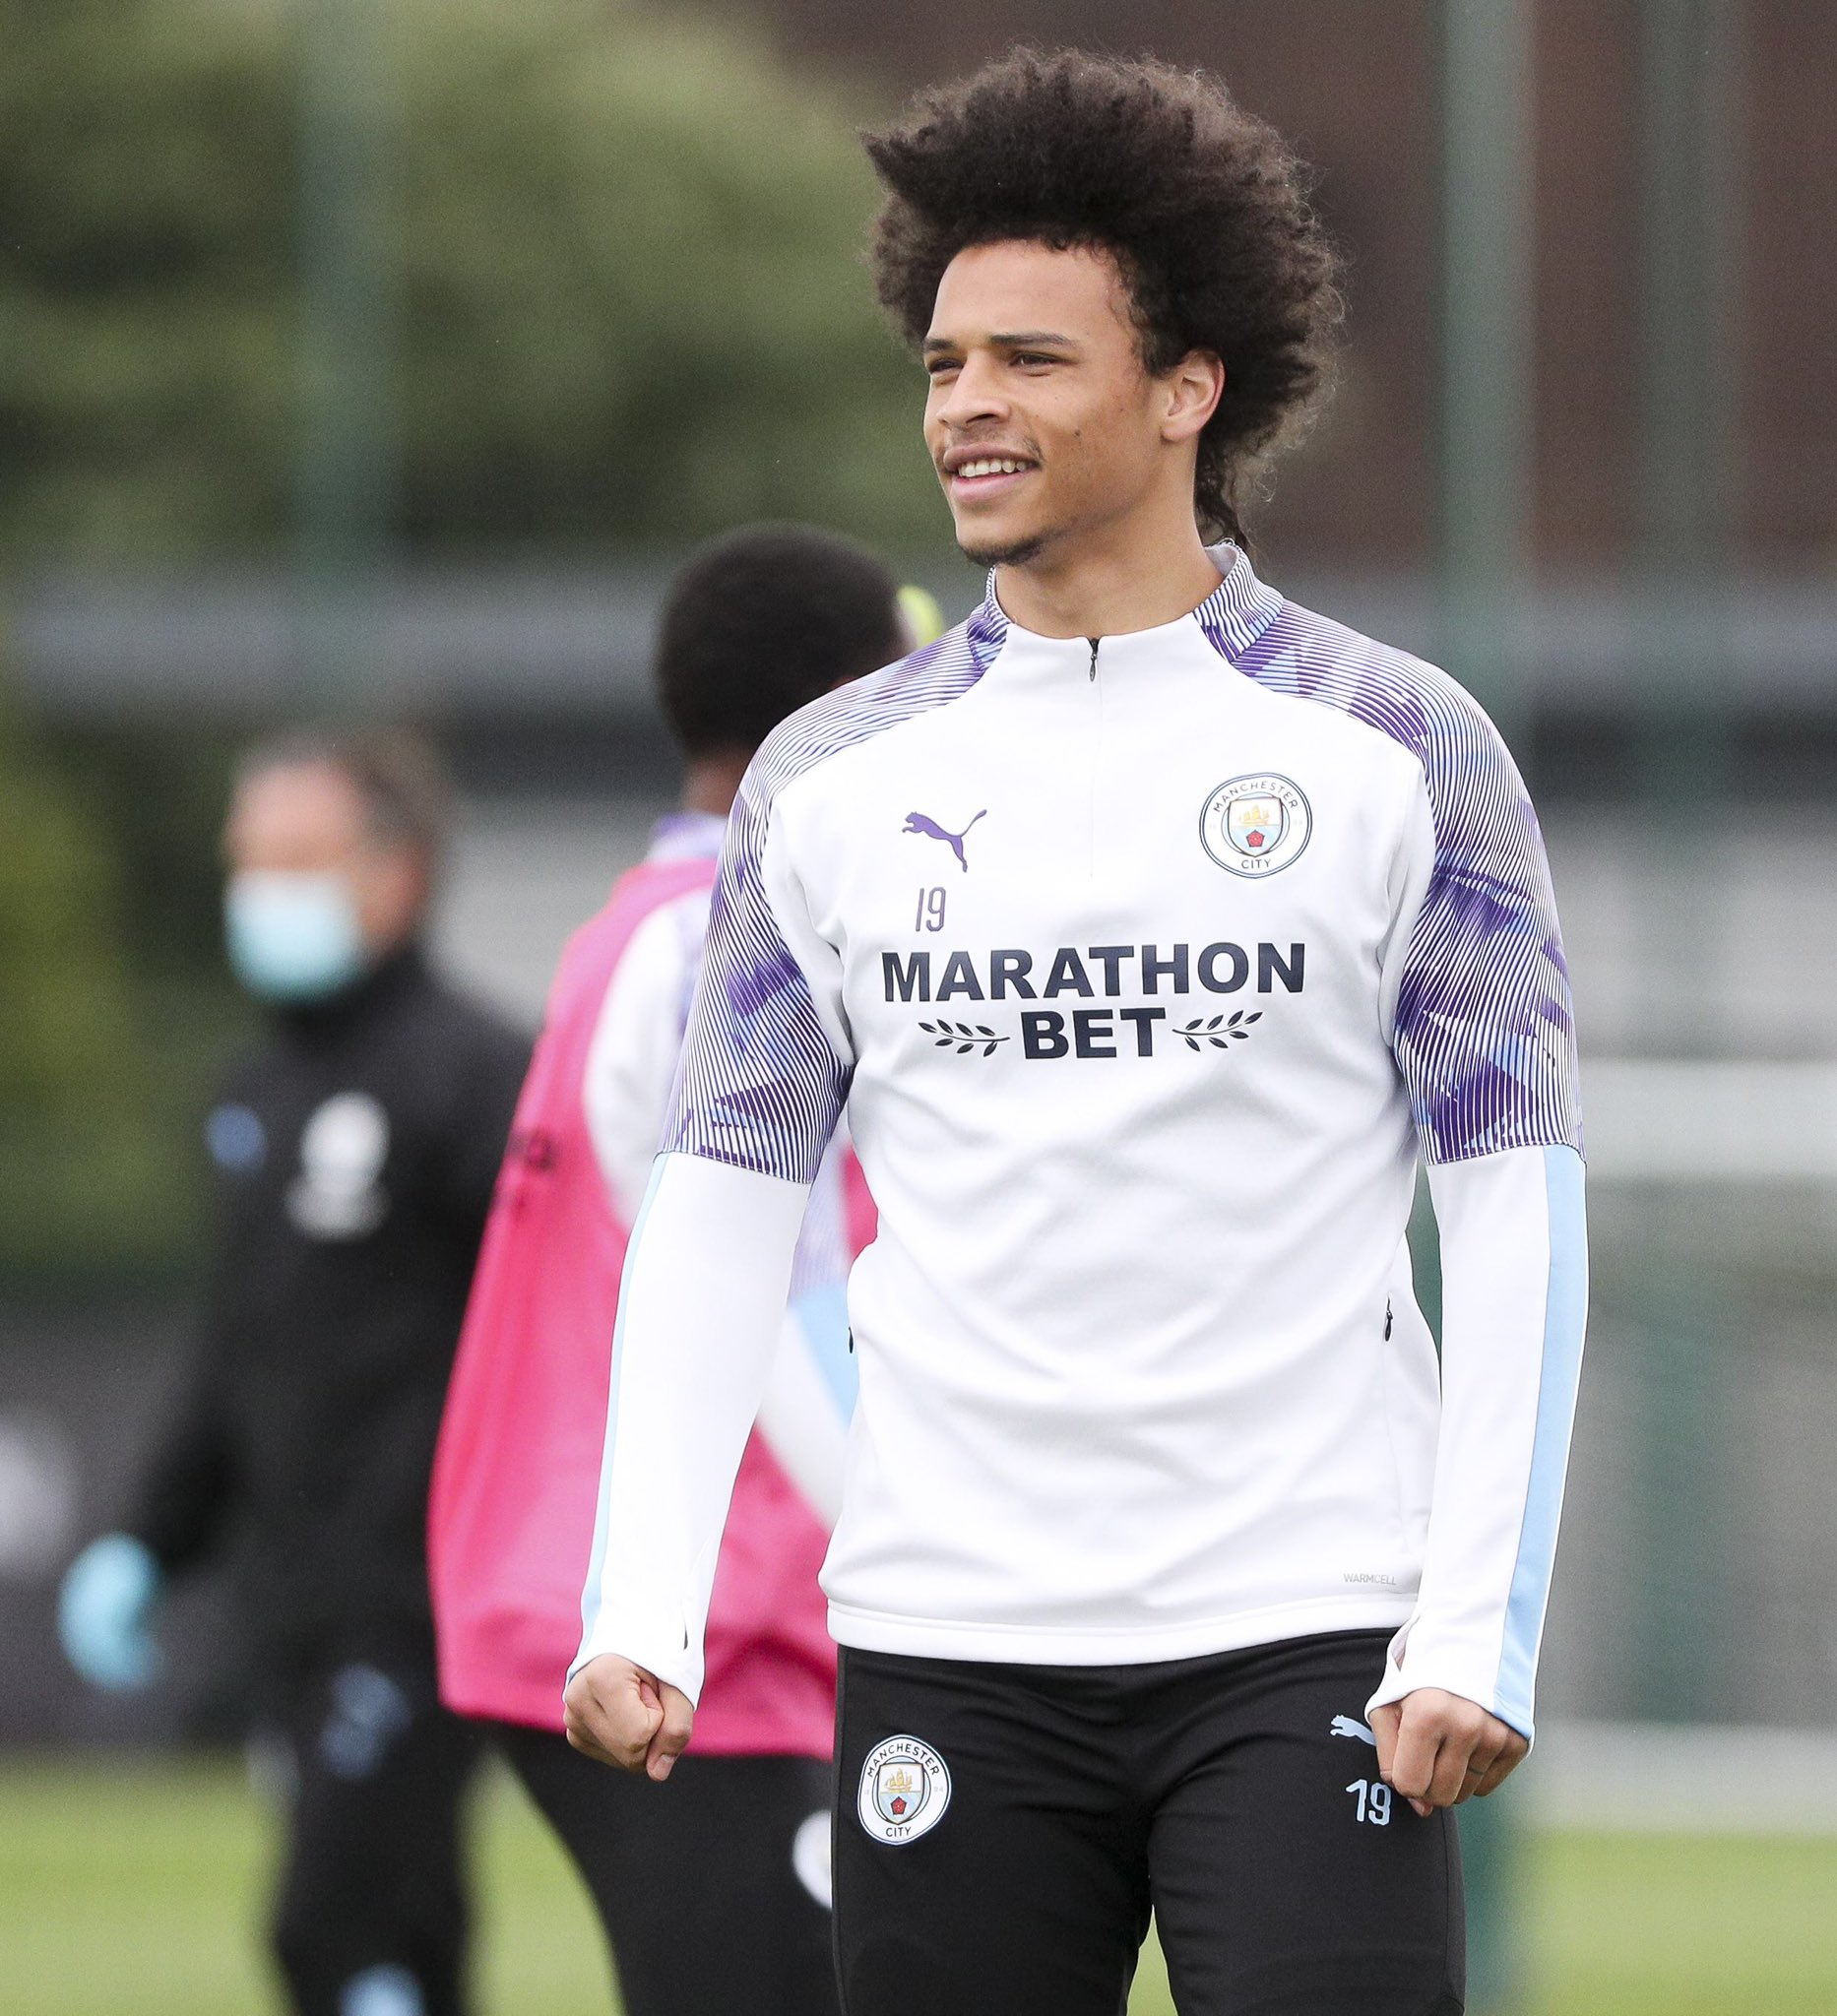 Guardiola Confirms Sane Rejected Man City's New Contract Offer